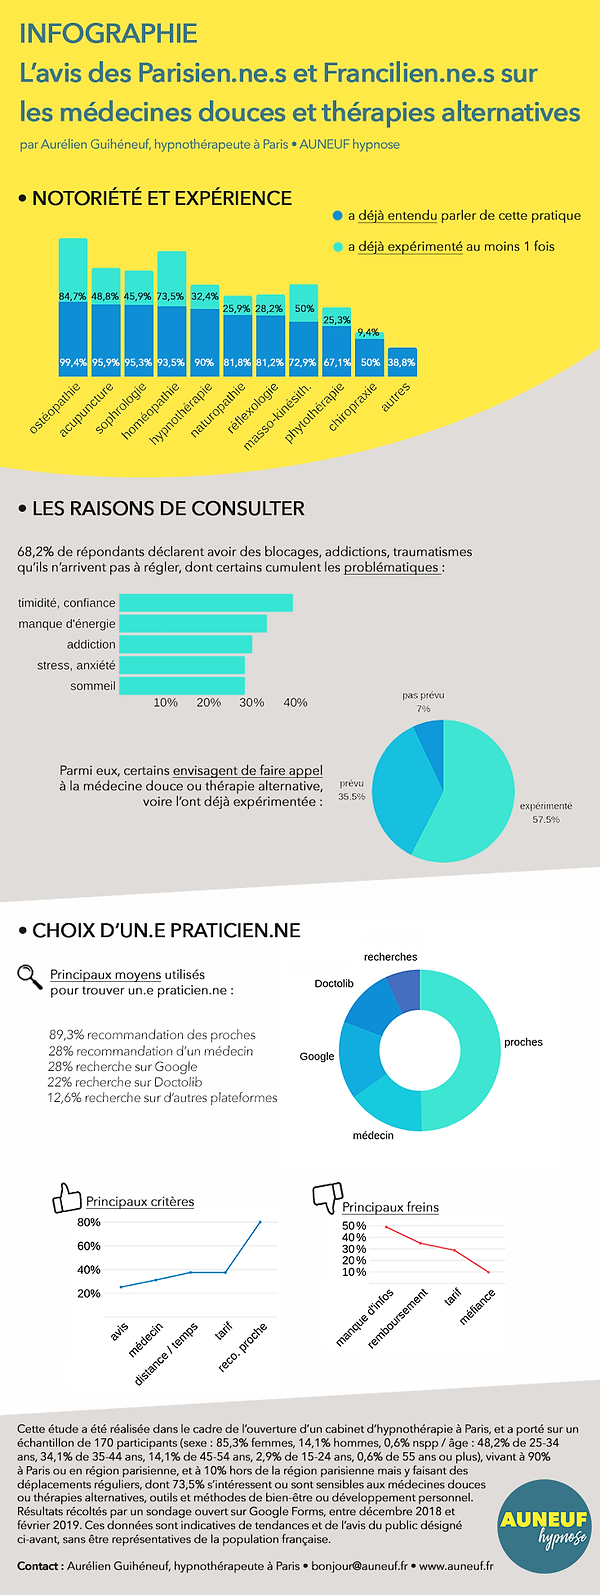 Infographie-medecines-douces-therapies-a